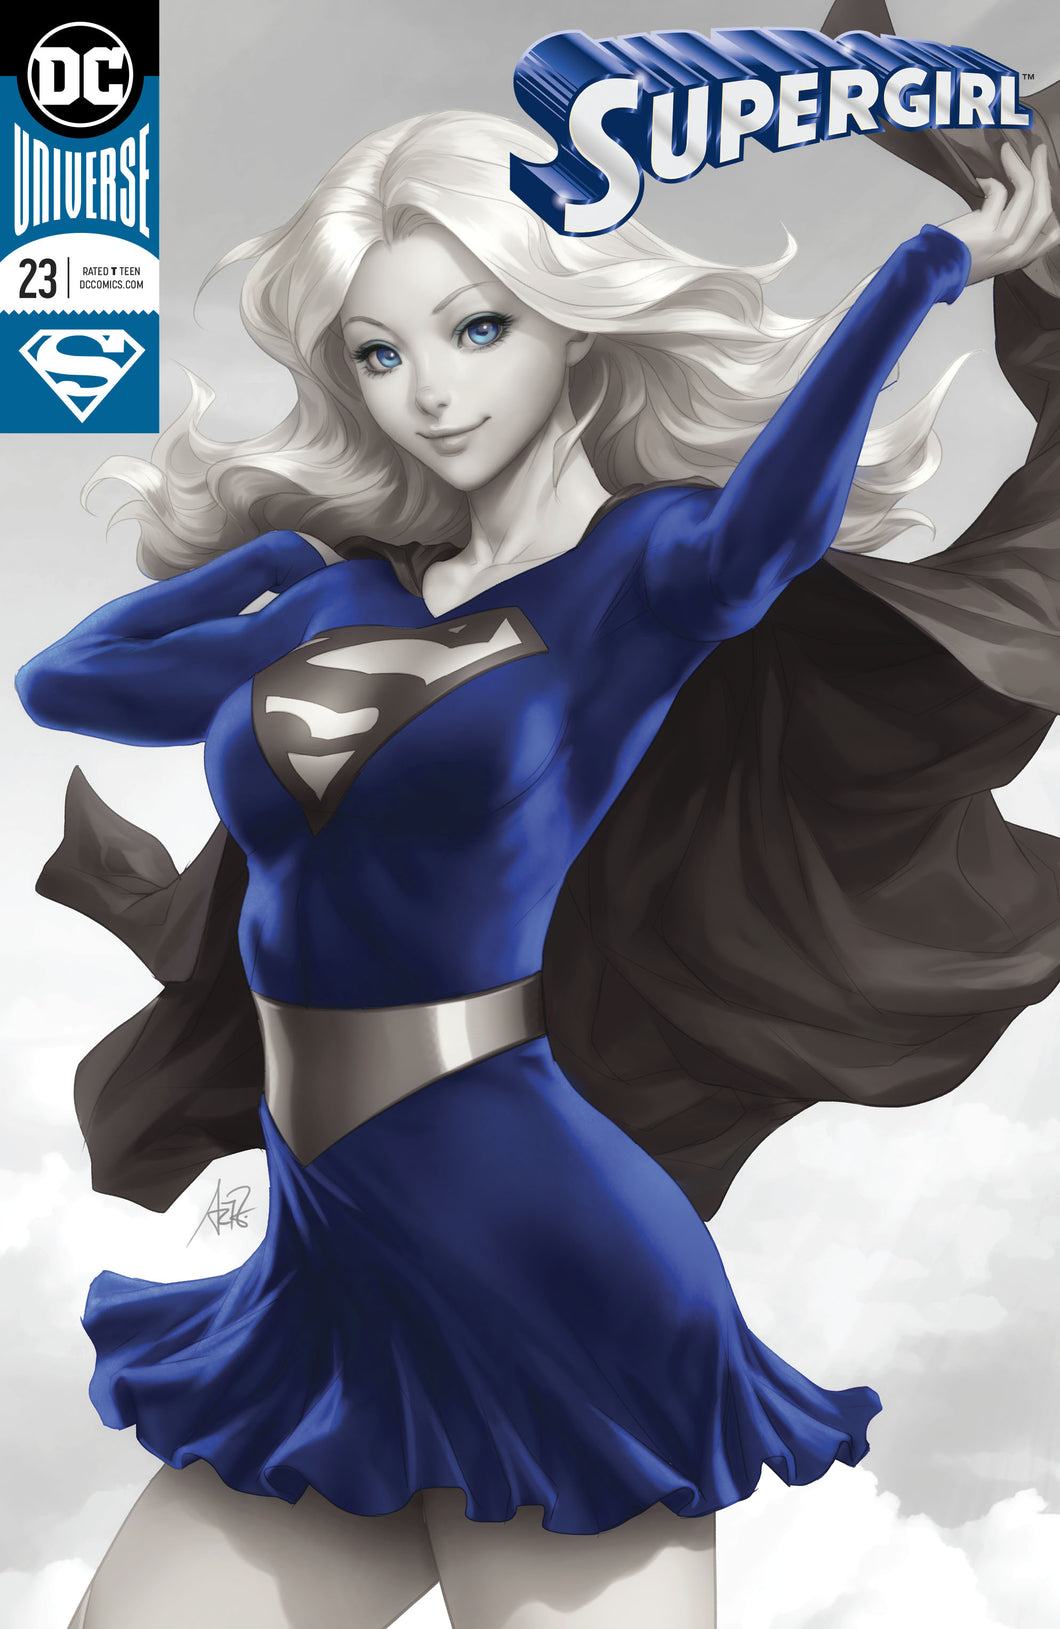 SUPERGIRL #23 FOIL Cover